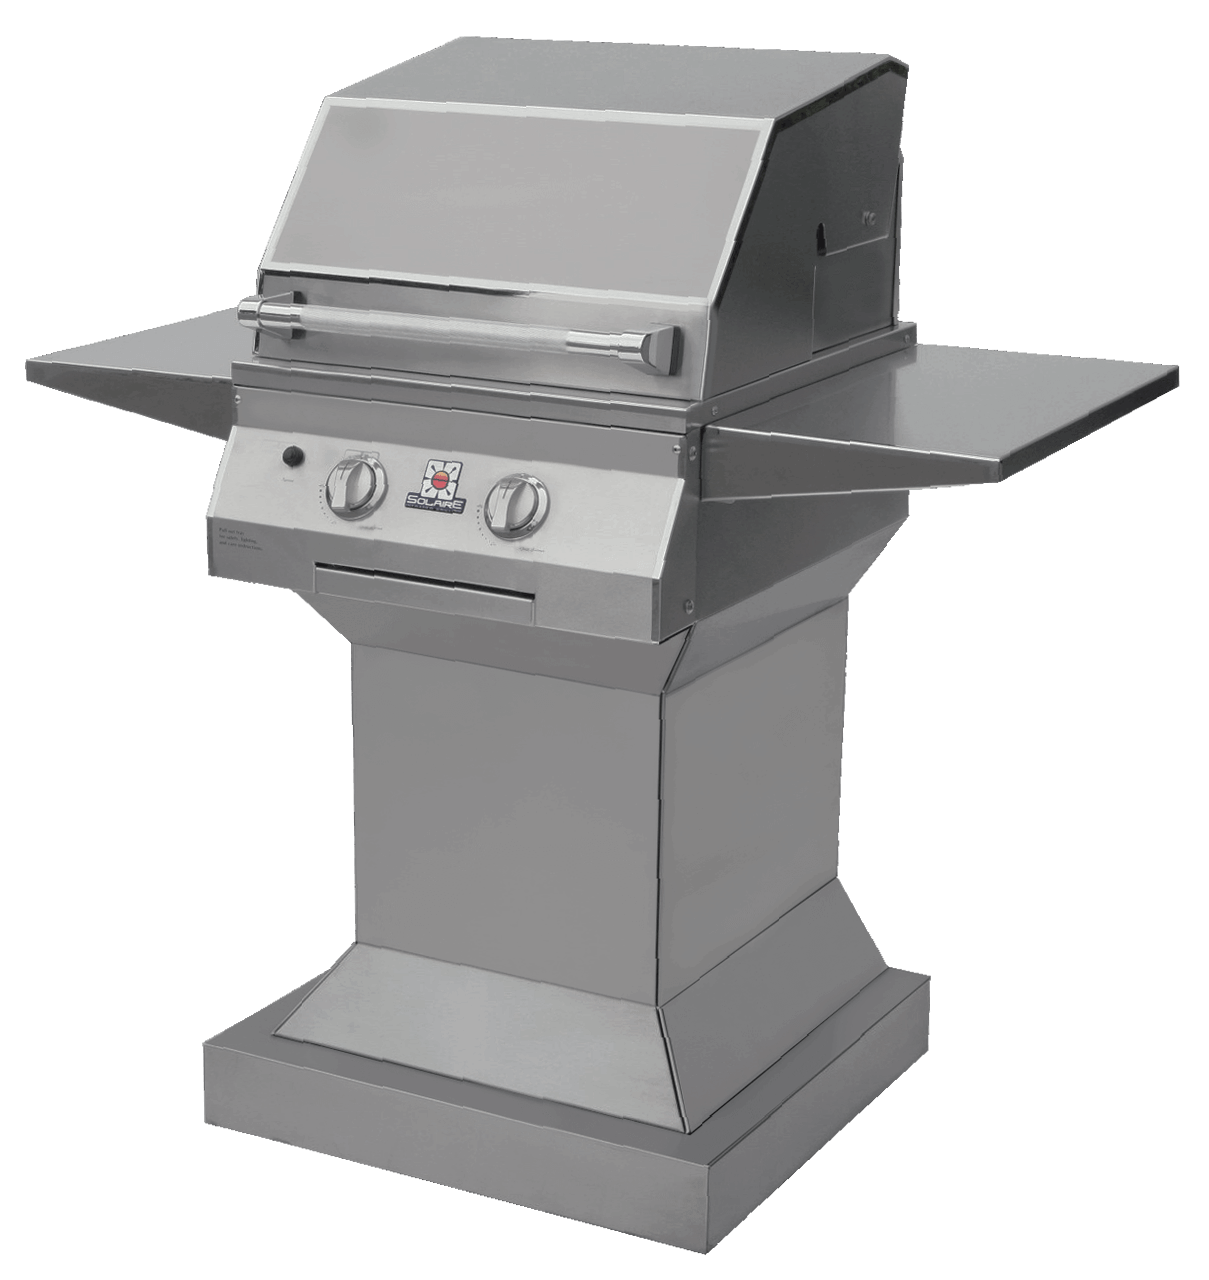 Solaire 21 XL Grill, Angular Pedestal, Front View, Hood Down, Shelves Up